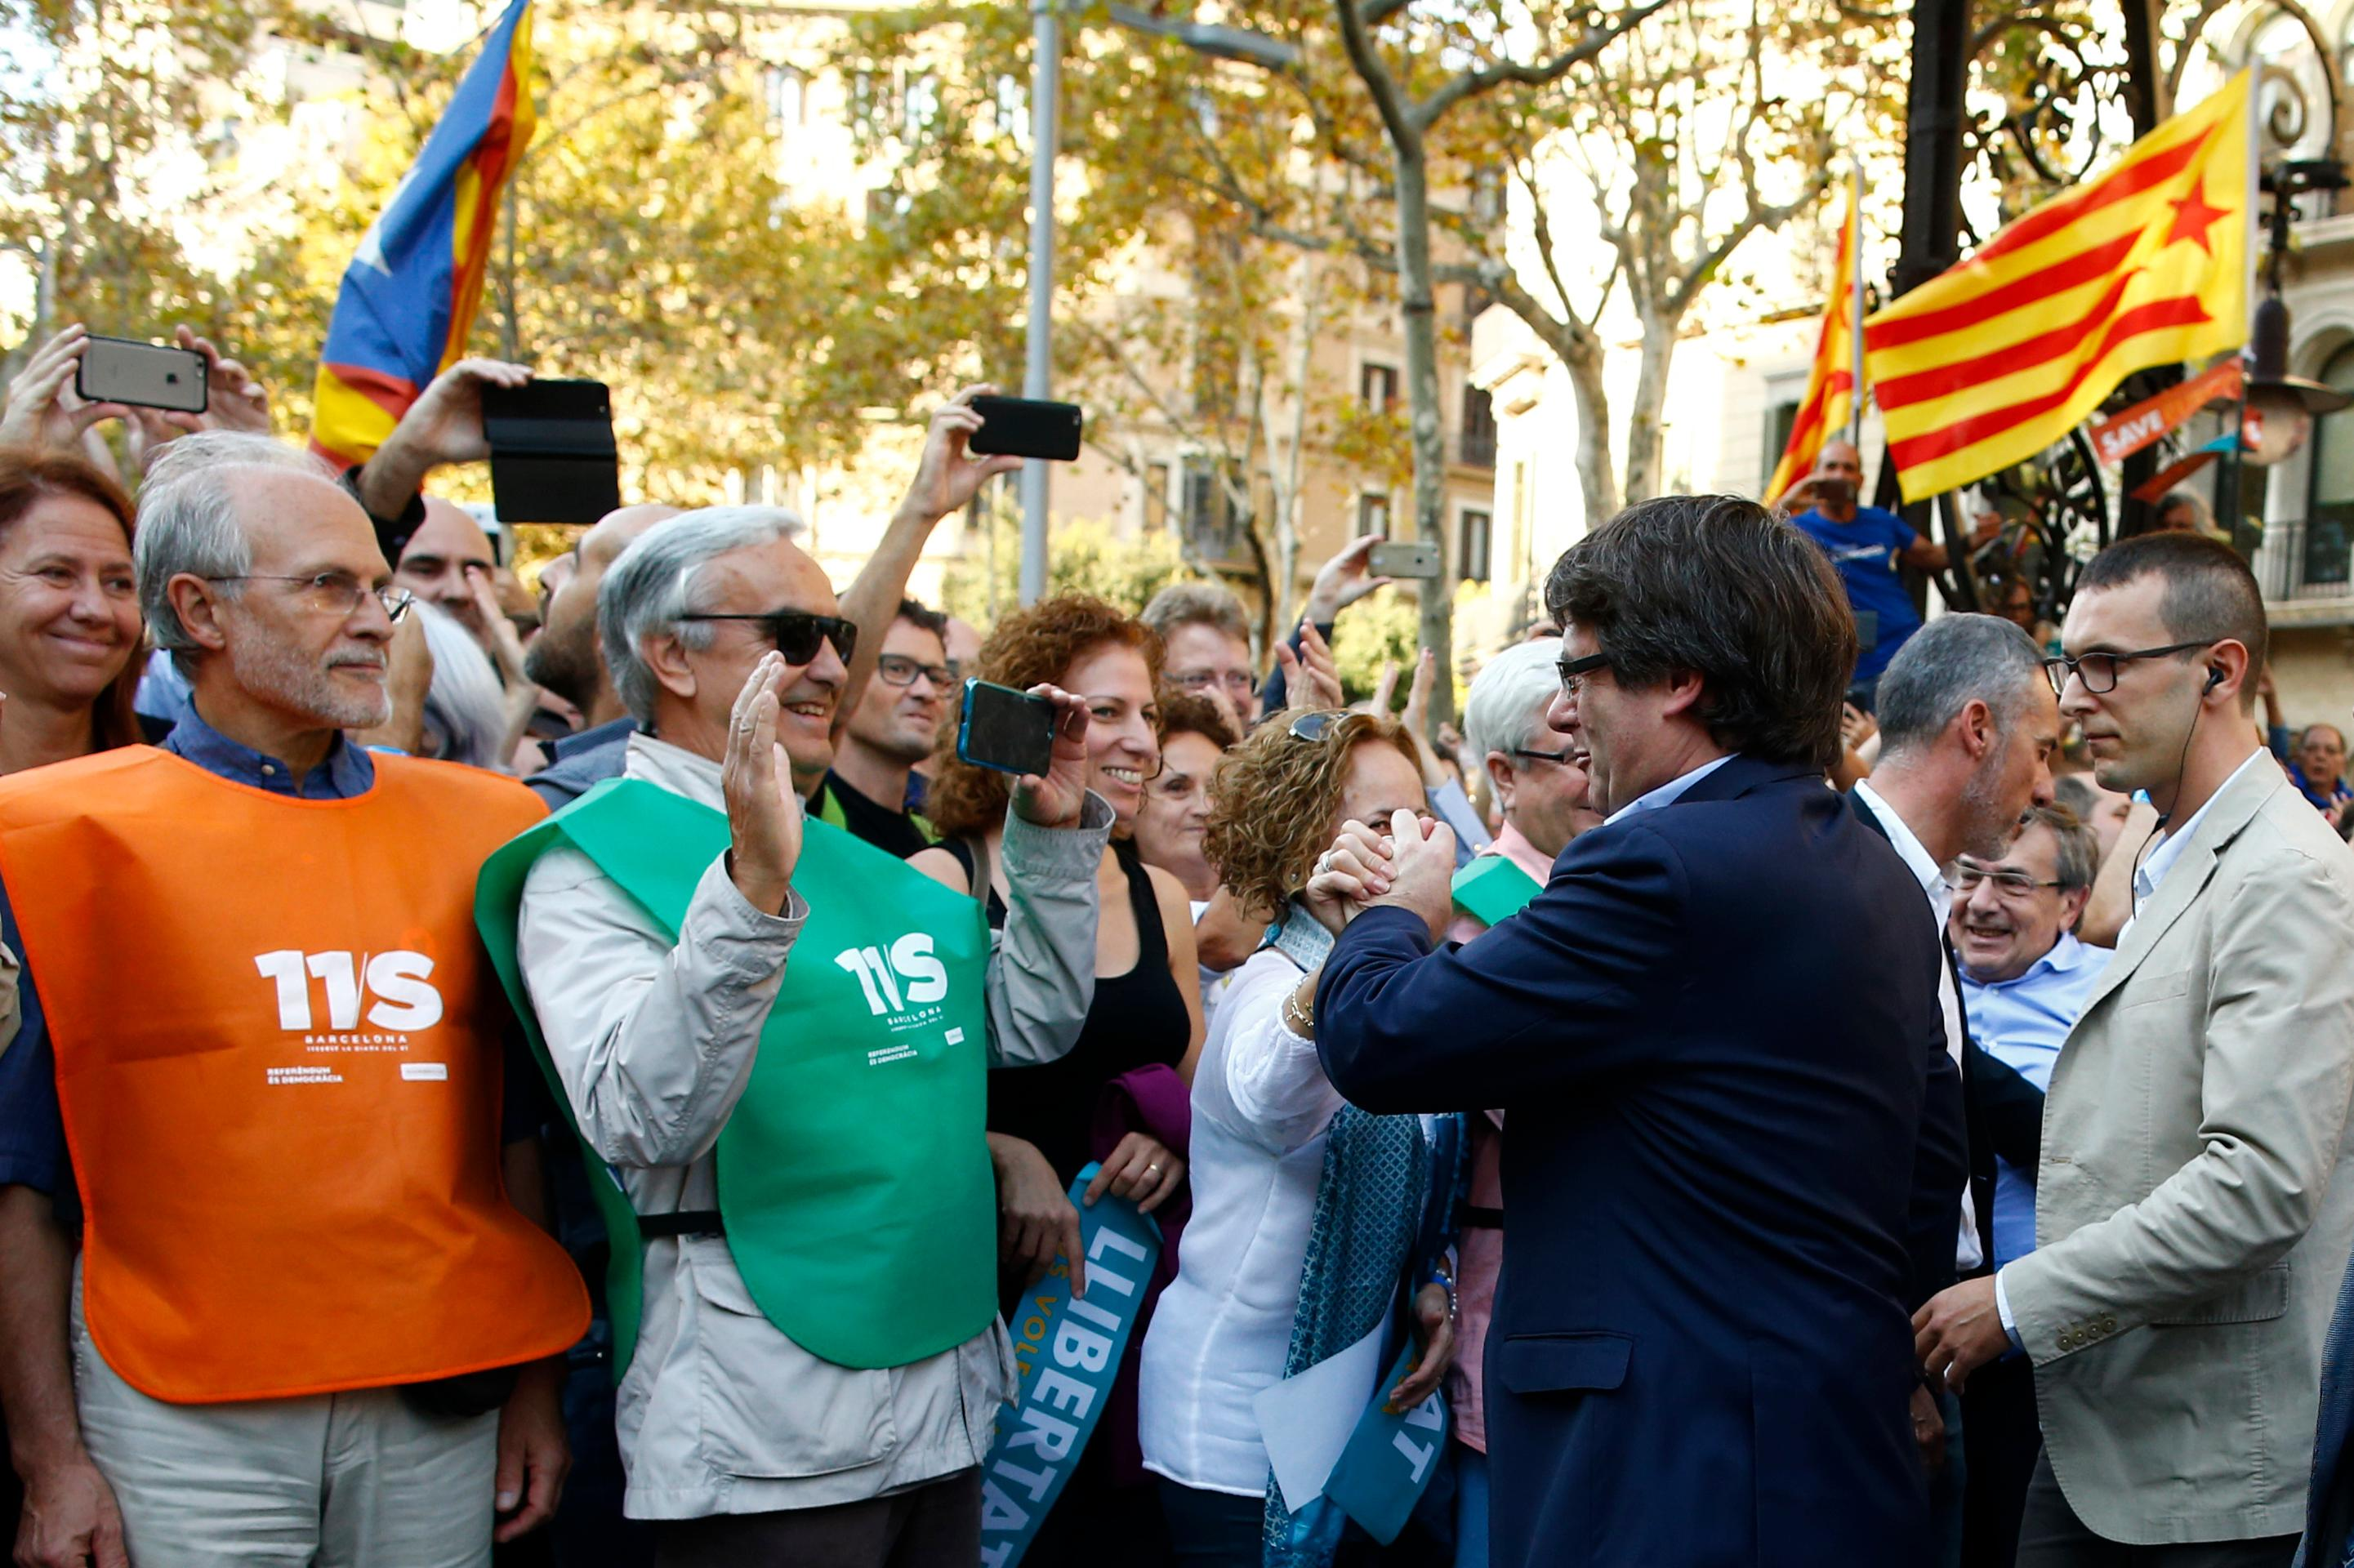 Catalan President Carles Puigdemont greets protesters before the start of a march to protest against the National Court's decision to imprison civil society leaders, in Barcelona, Spain, Saturday, Oct. 21, 2017. The Spanish government moved decisively Saturday to use a previously untapped constitutional power so it can take control of Catalonia and derail the independence movement led by separatist politicians in the prosperous industrial region. AP Photo/Manu Fernandez)